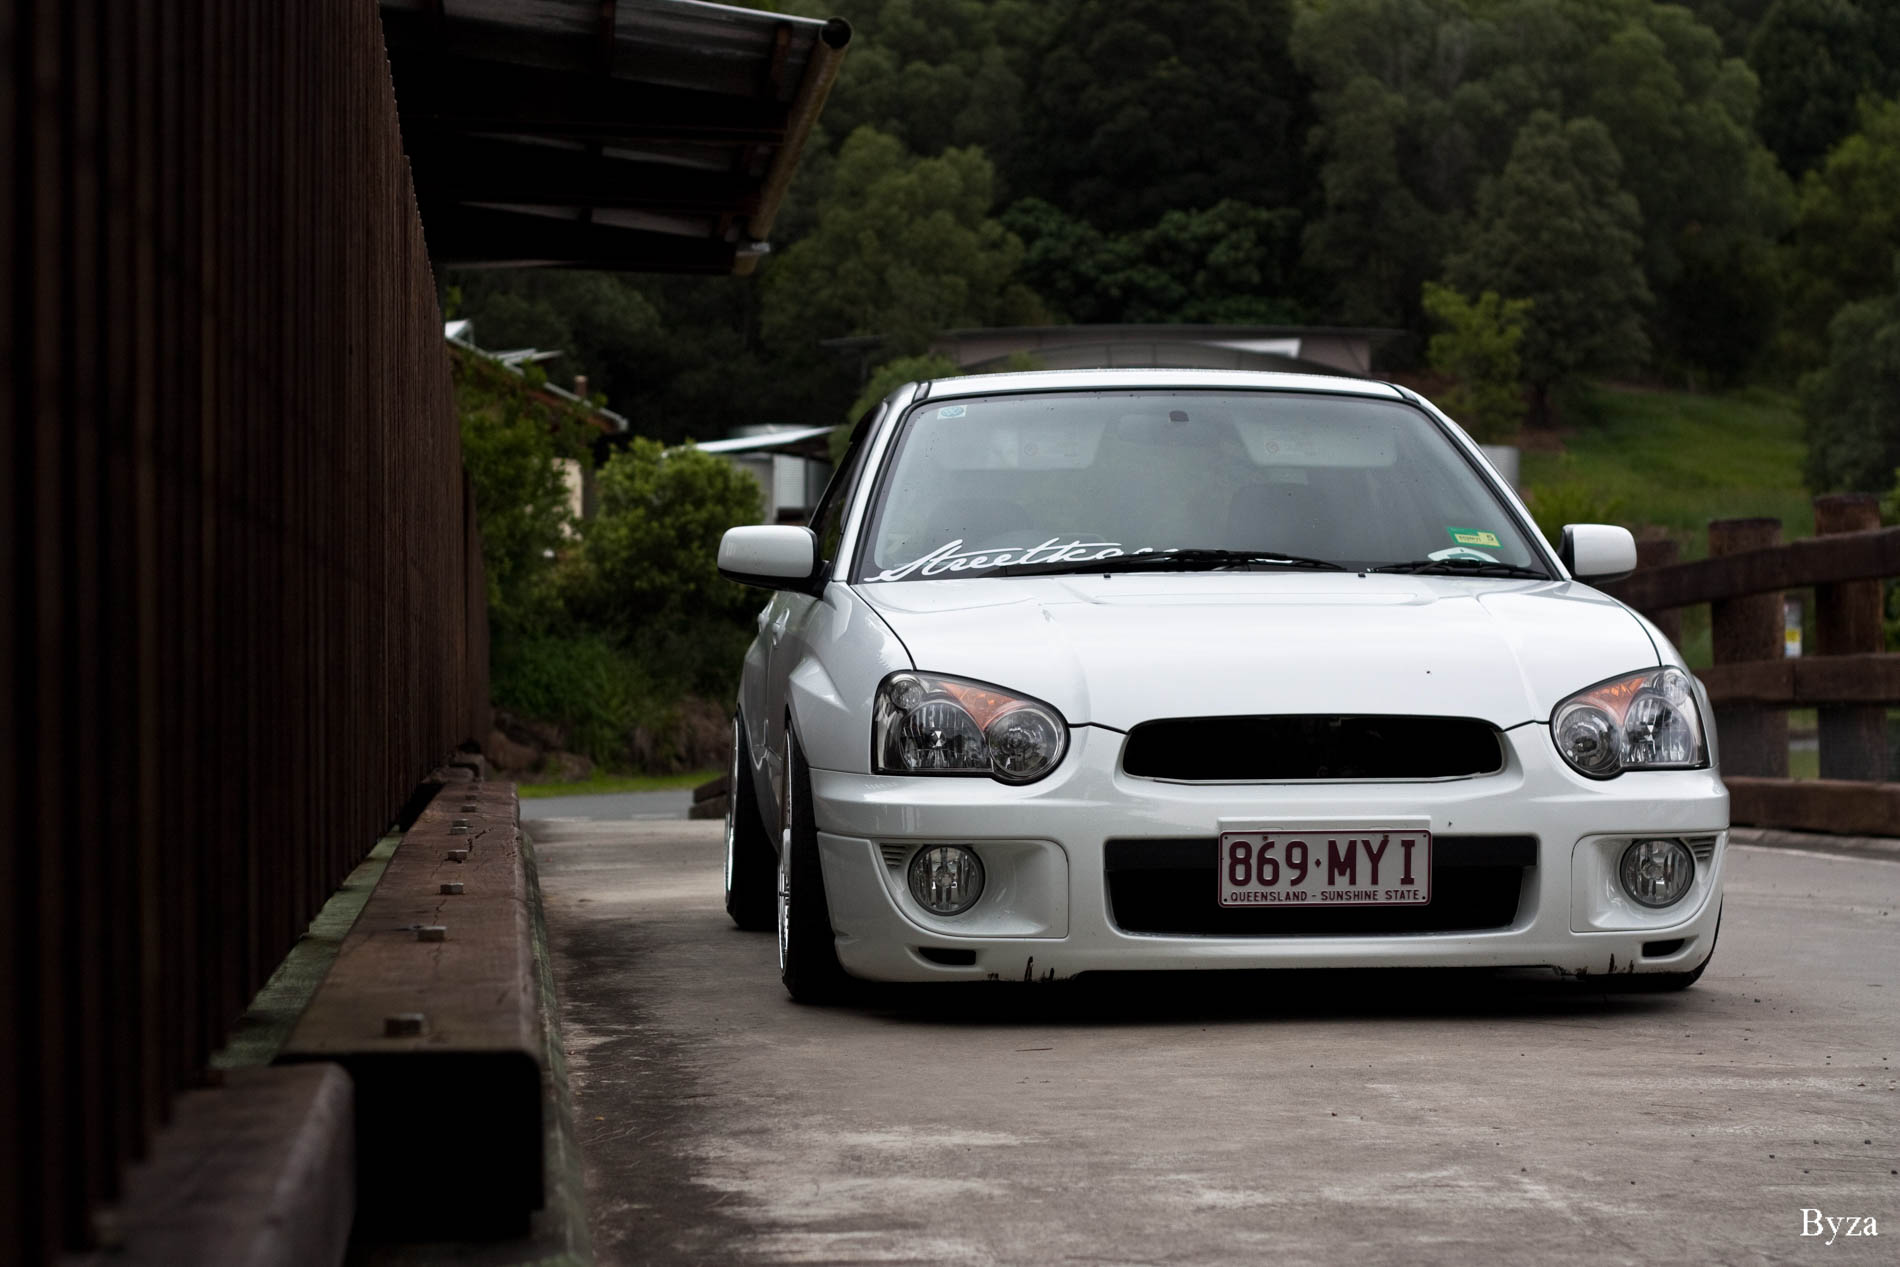 alexs-albino-subie-fitted-fresh-on-bbs-4.jpg